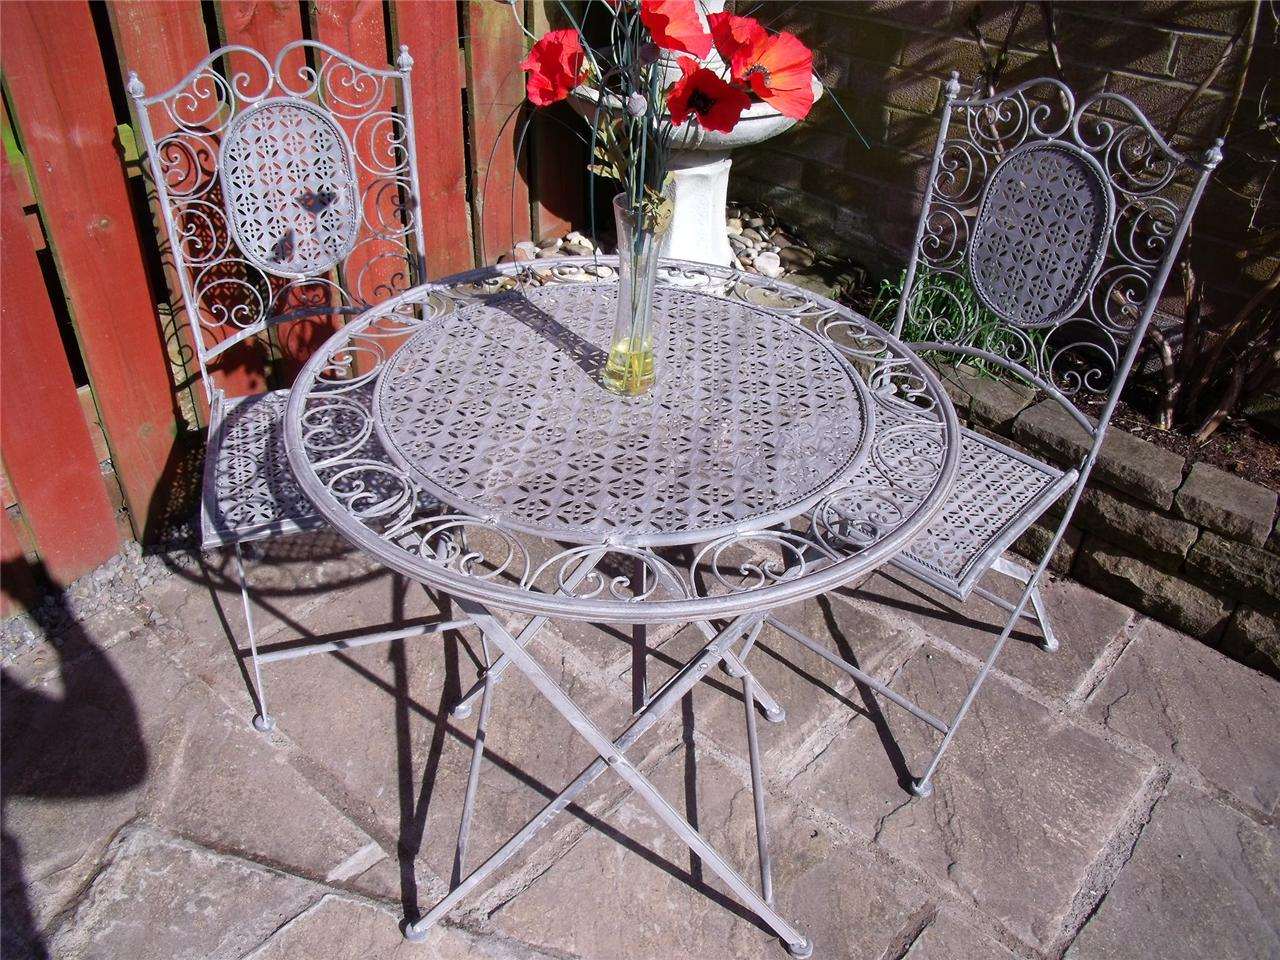 Bistro set garden furniture table and chairs shabby chic antique style grey 1 ebay - Garden furniture shabby chic ...